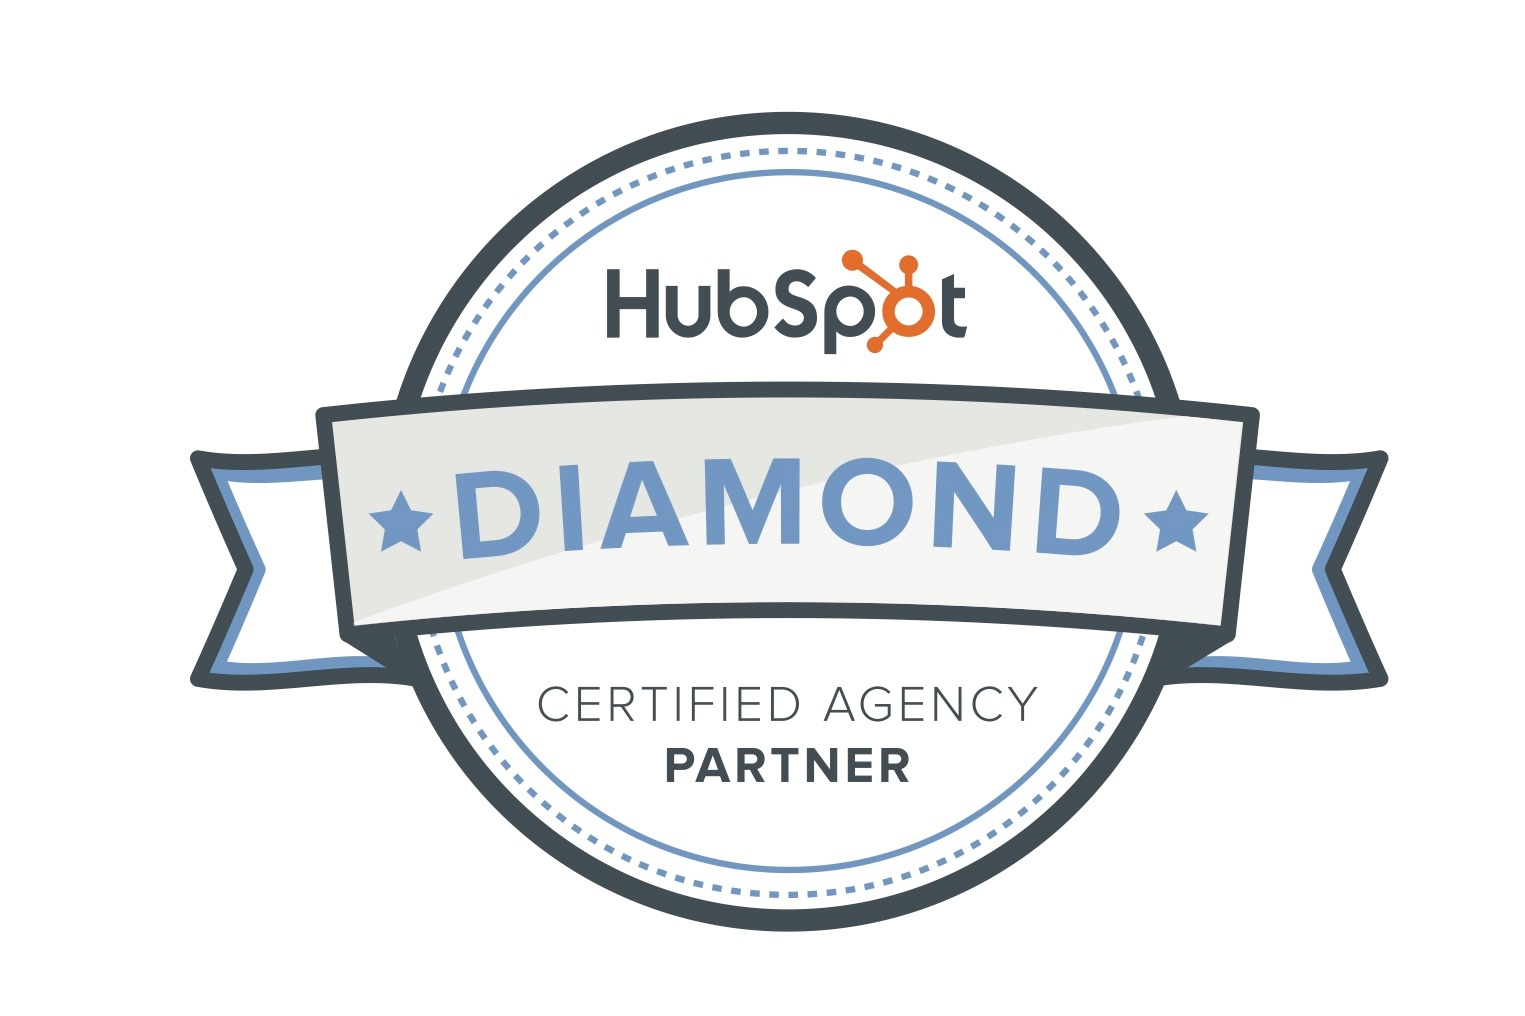 EYEMAGINE - HubSpot Diamond Partner